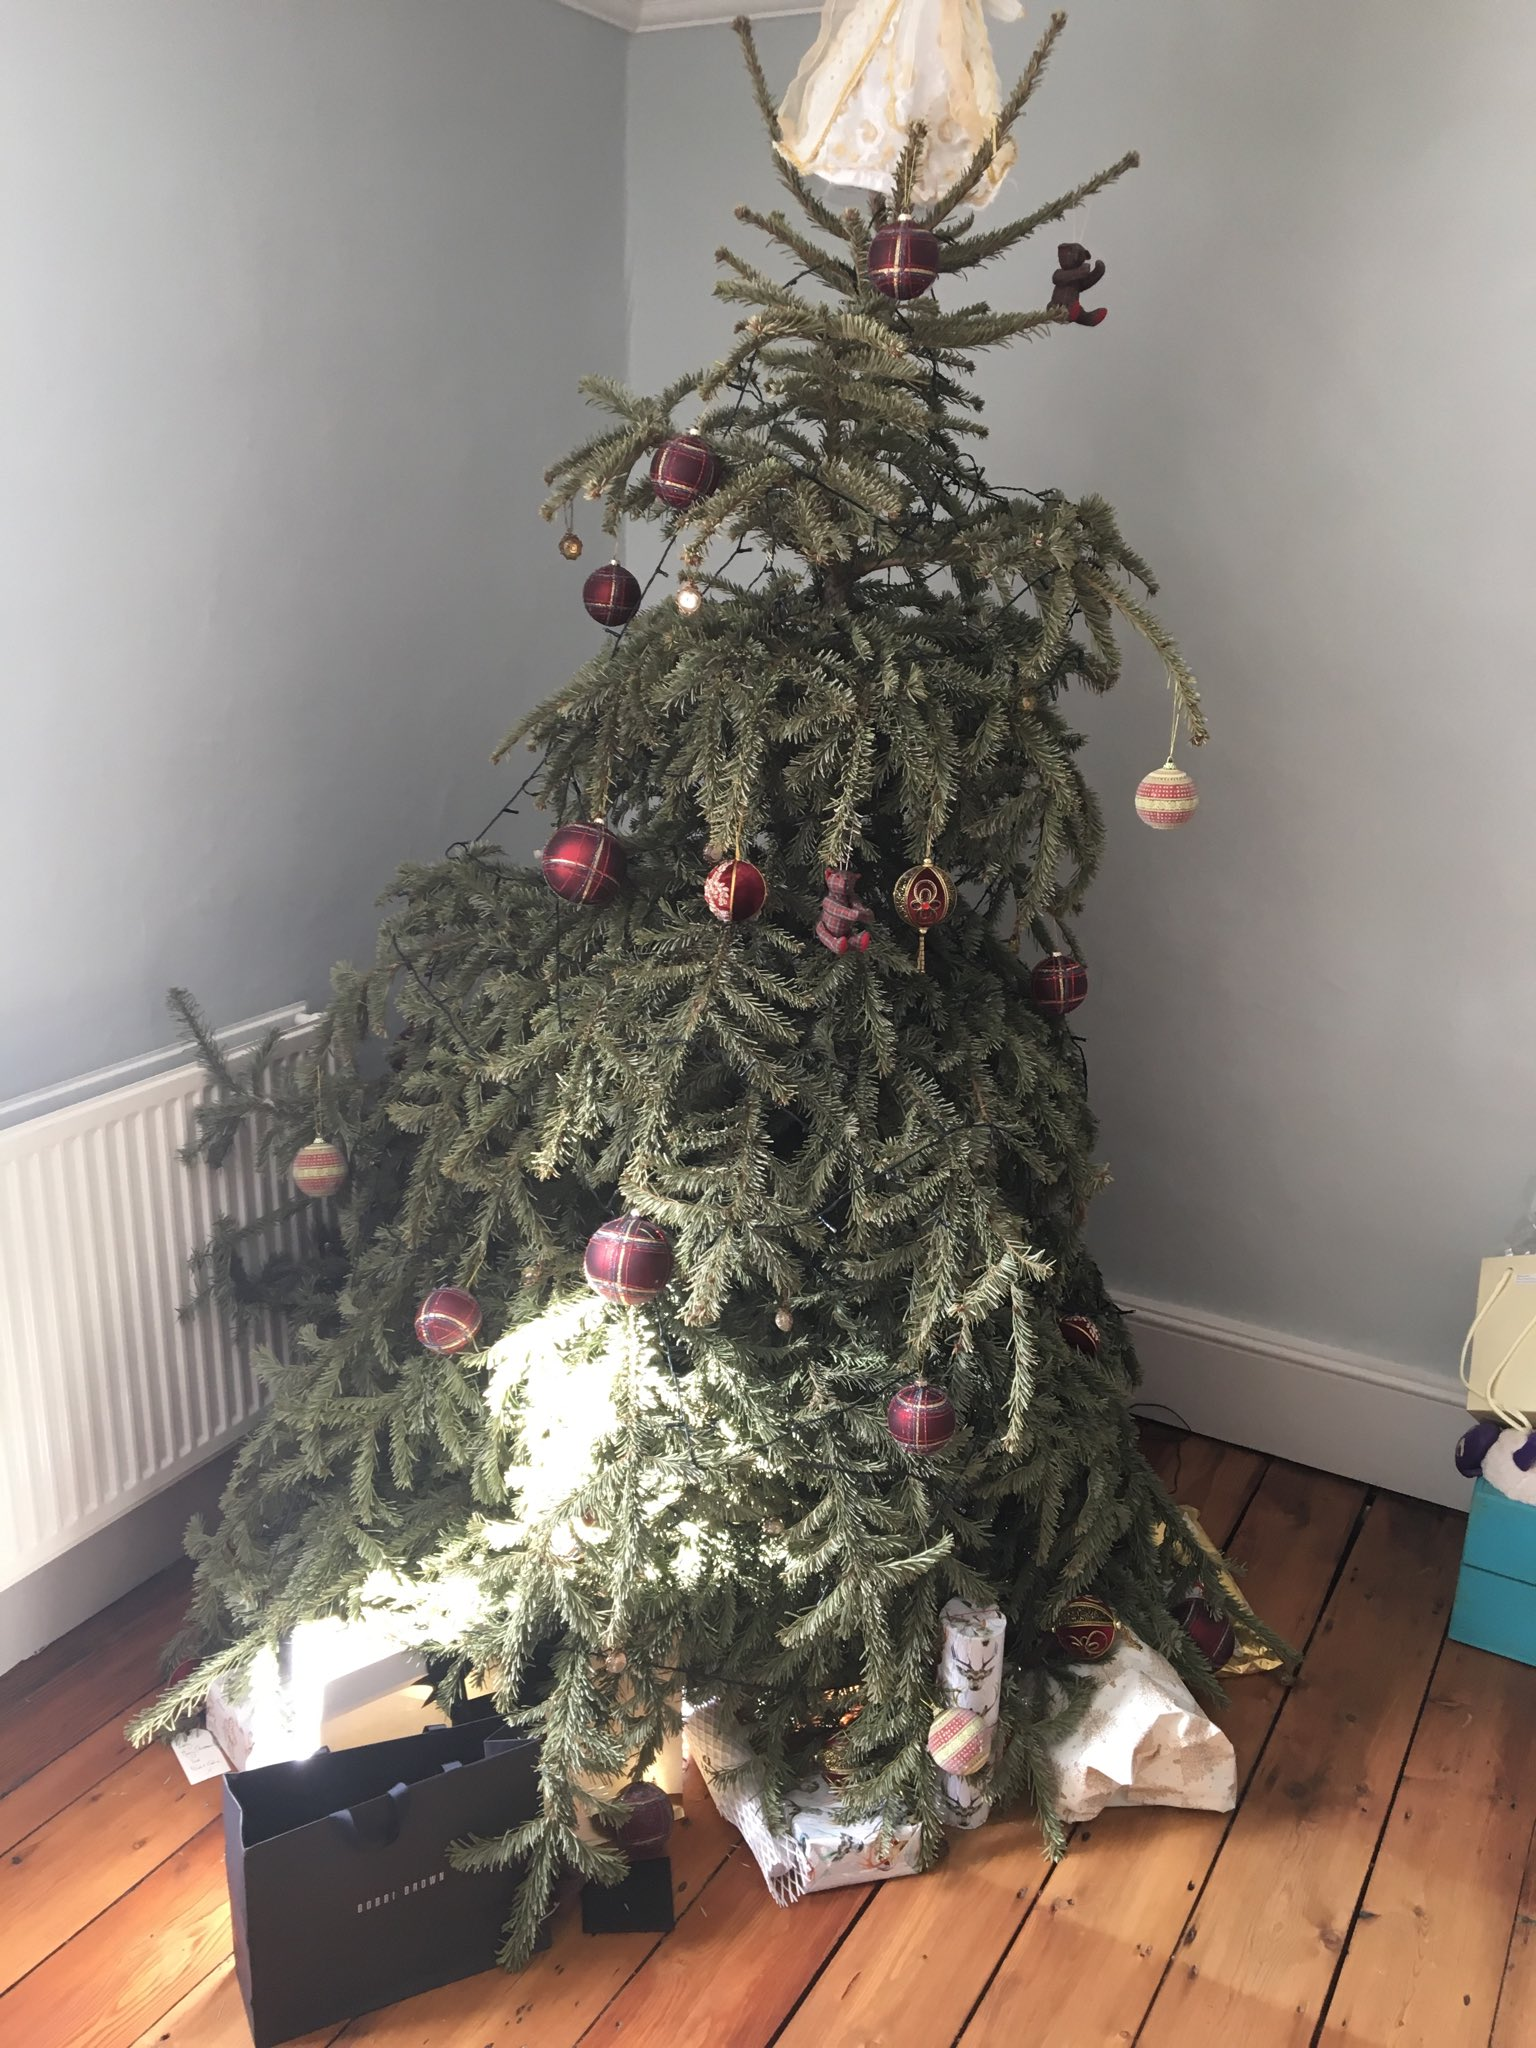 I've been so busy I have a dead Xmas tree in my living room - how sad is that! https://t.co/grUL7Z4qGk